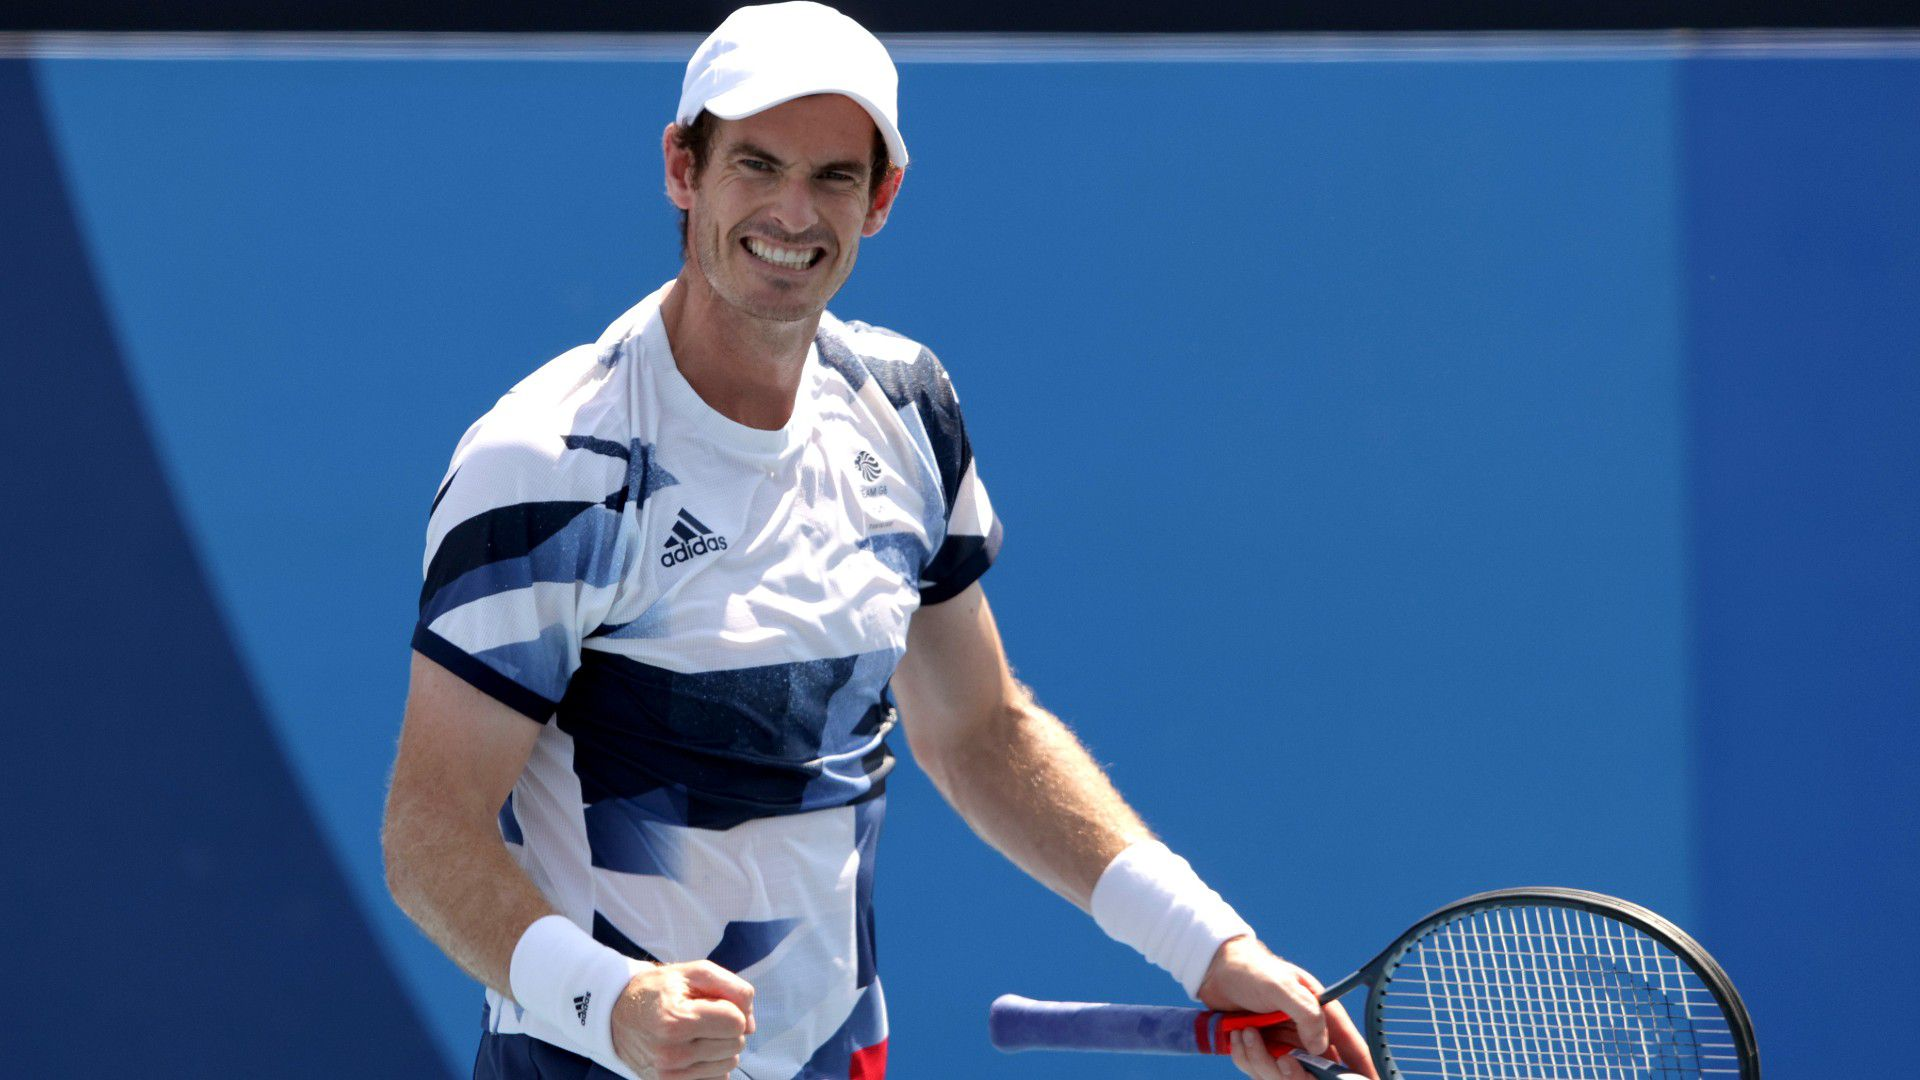 Tokyo Olympics 2021: Andy Murray out of Olympic singles tournament with quad strain